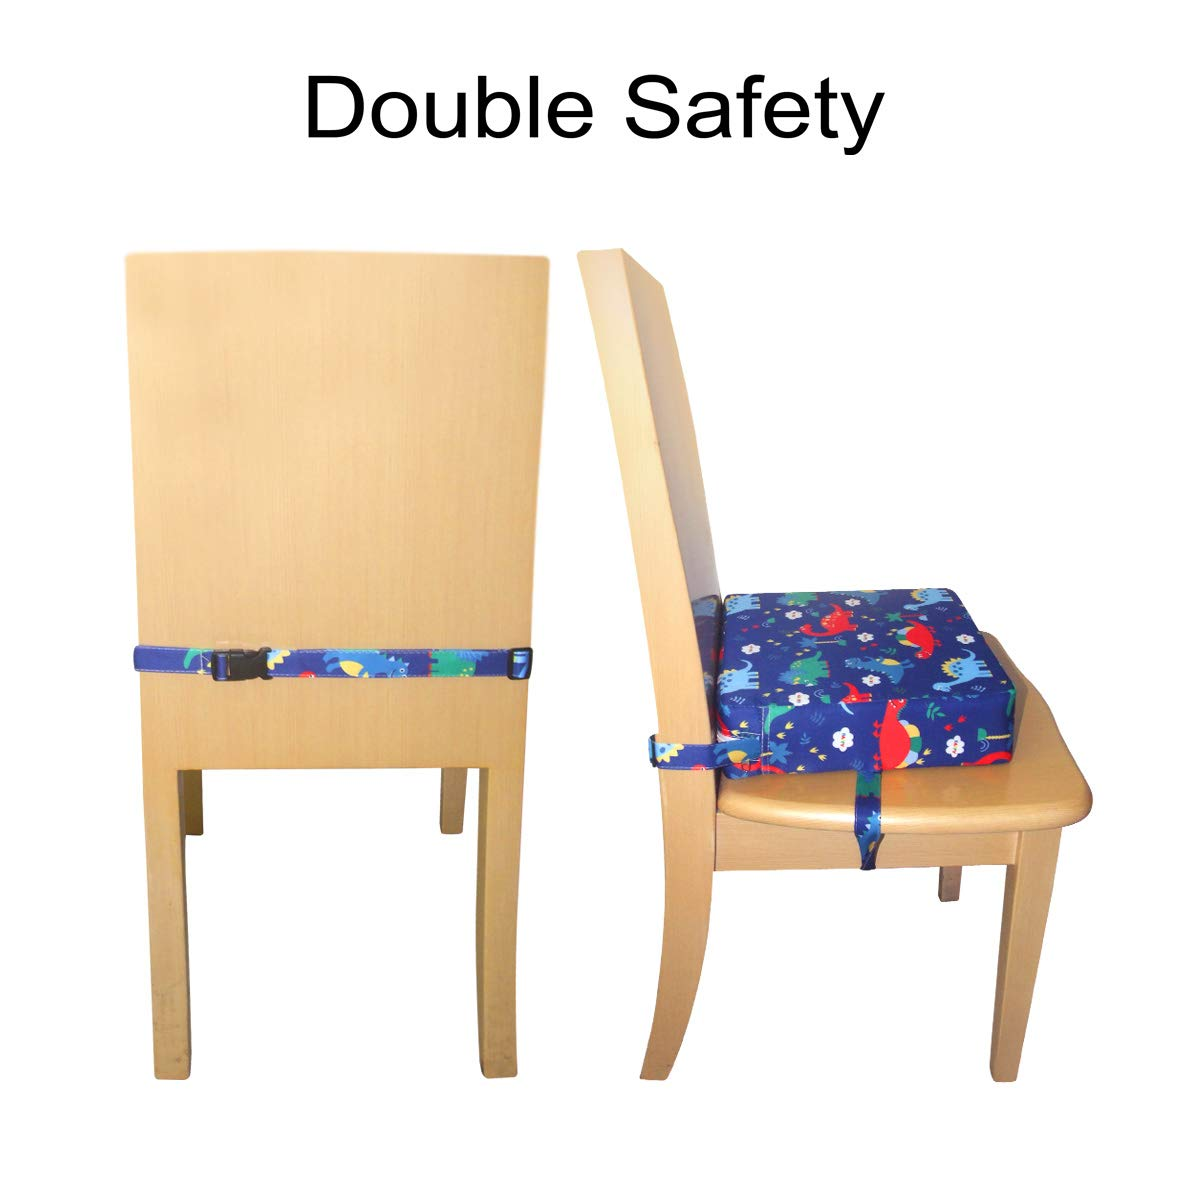 Christmas Tree Sunmall Dining Chair Heightening Cushion Portable Dismountable Adjustable Highchair Booster for Baby Toddler Kids Infant Washable Thick Chair Seat Pad Mat